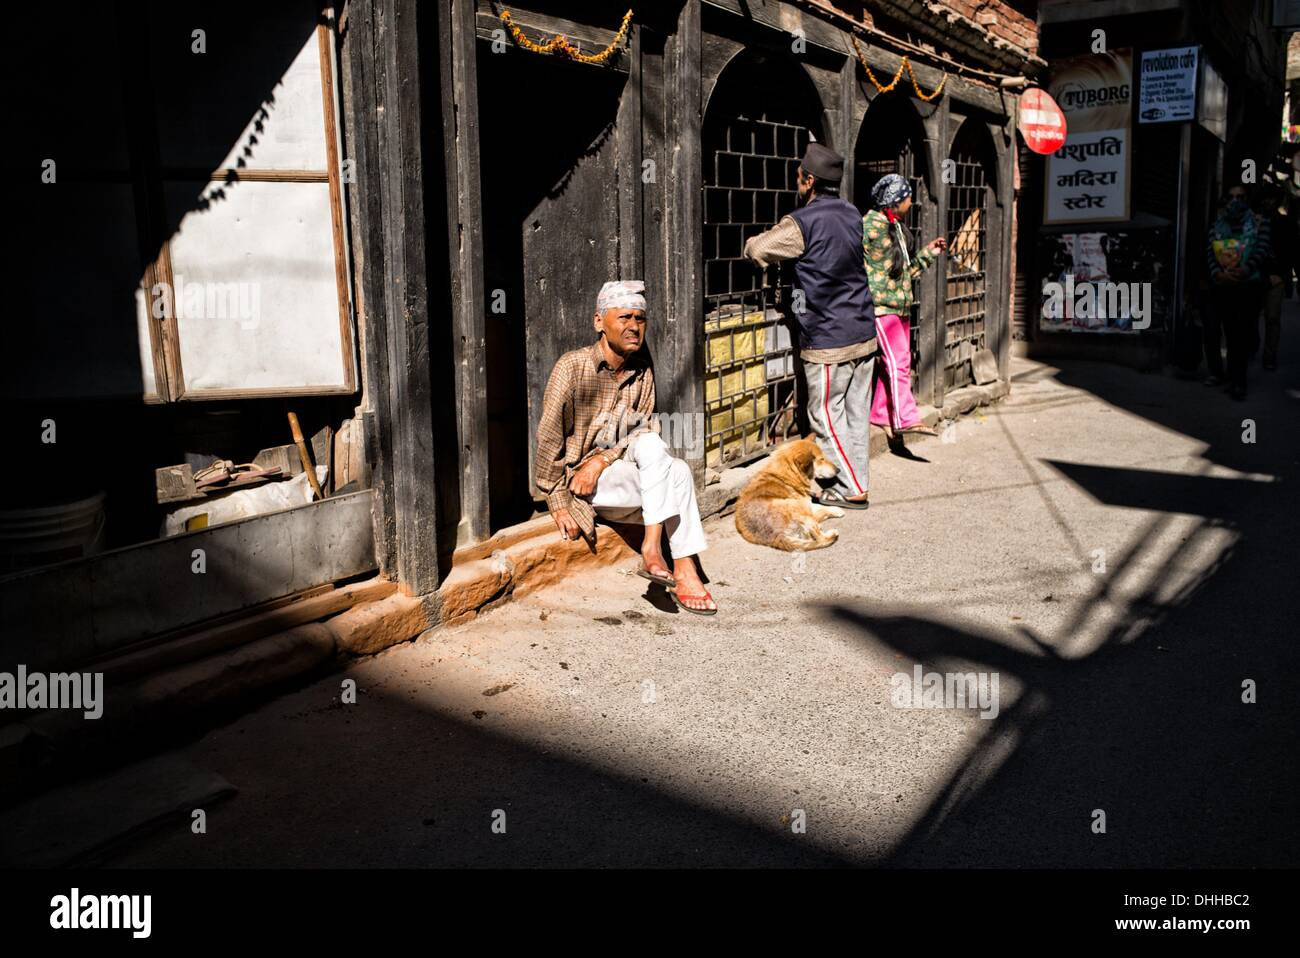 Kathmandu, Kathmandu, Nepal. 11th Nov, 2013. Elderly man sits in front of his closed shop on 11 Novemeber 2013. During general strike all shops are ordered to close.Communist Party of Nepal - Maoists (CPN-M) and their 30 parties alliance announced ten day general strike to hinder the elections as Nepal prepares to vote to elect Constitutional Assembly members. Nepal political crisis started in may 2012 when the previous constitutional assembly failed to draft the constitution. © Agron Dragaj/ZUMAPRESS.com/Alamy Live News - Stock Image